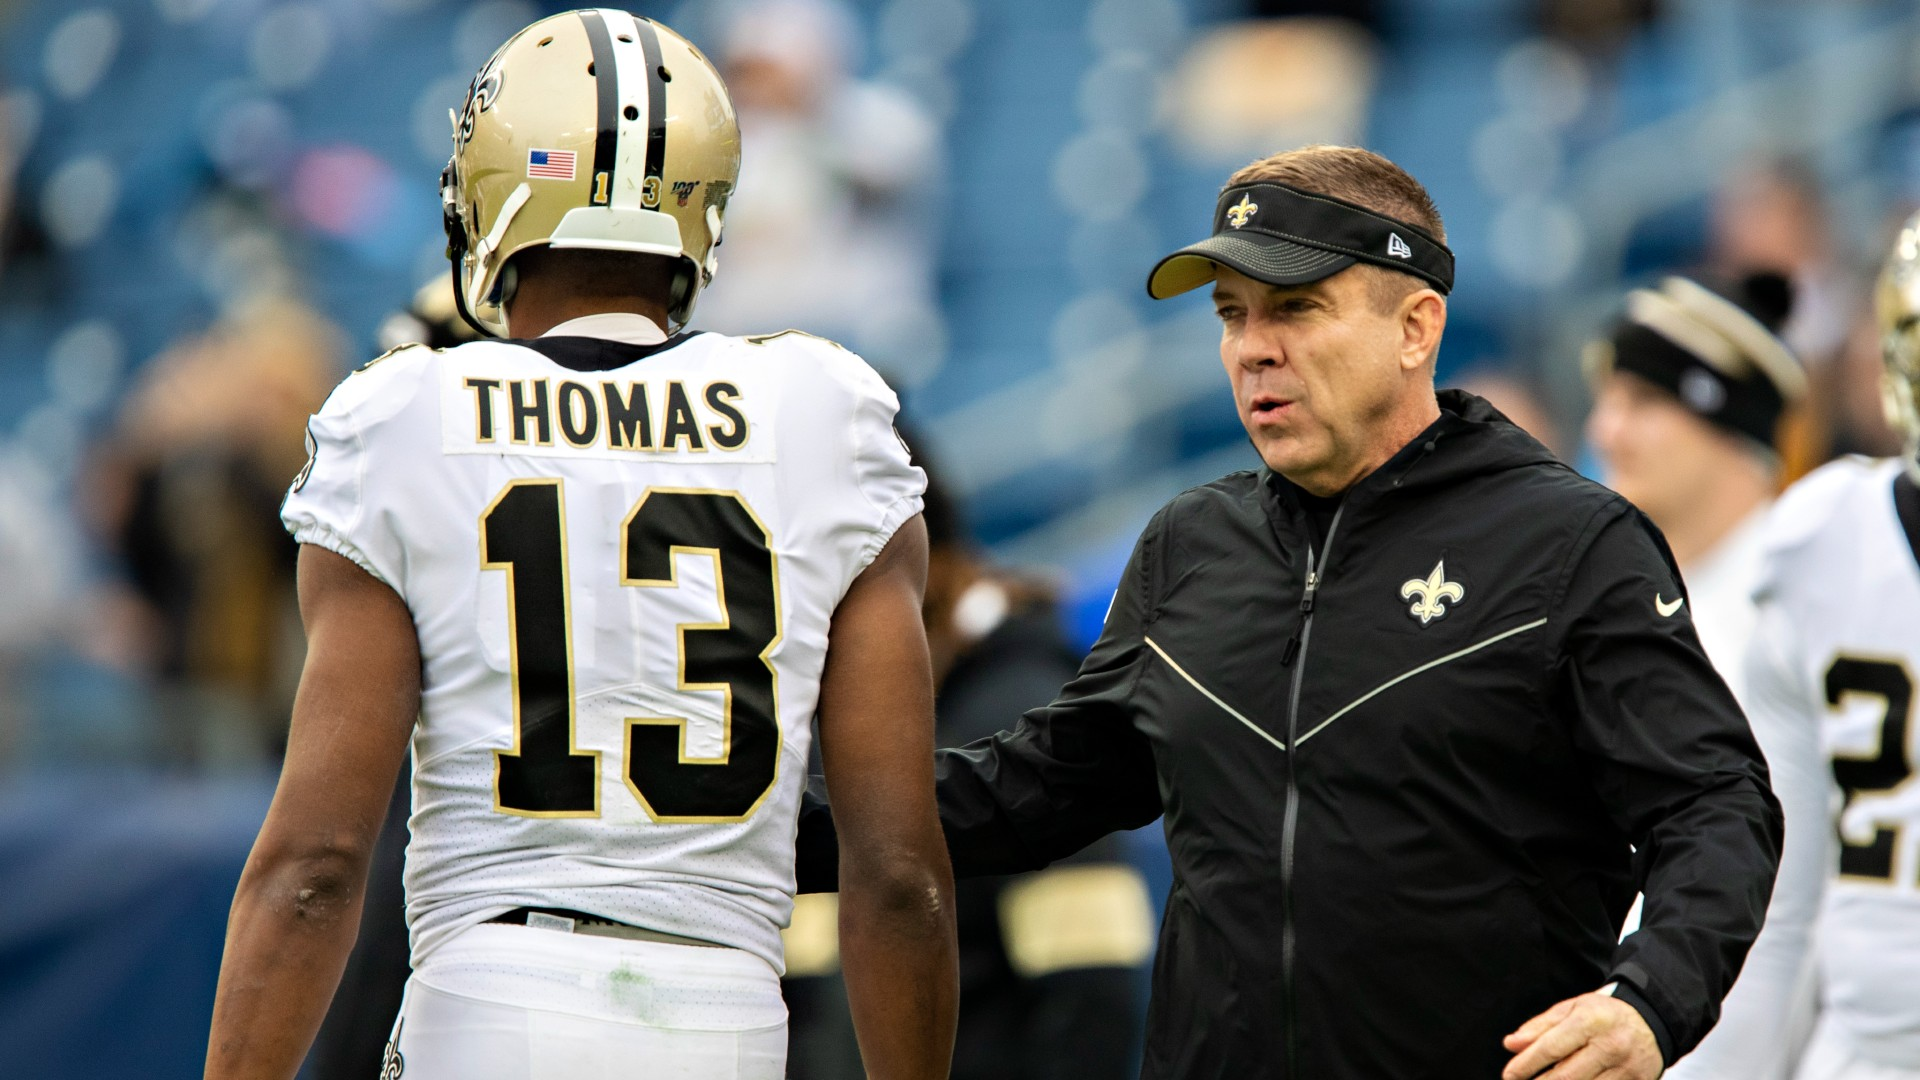 New Orleans Saints head coach Sean Payton expressed frustration that receiver Michael Thomas waited until June for ankle surgery.